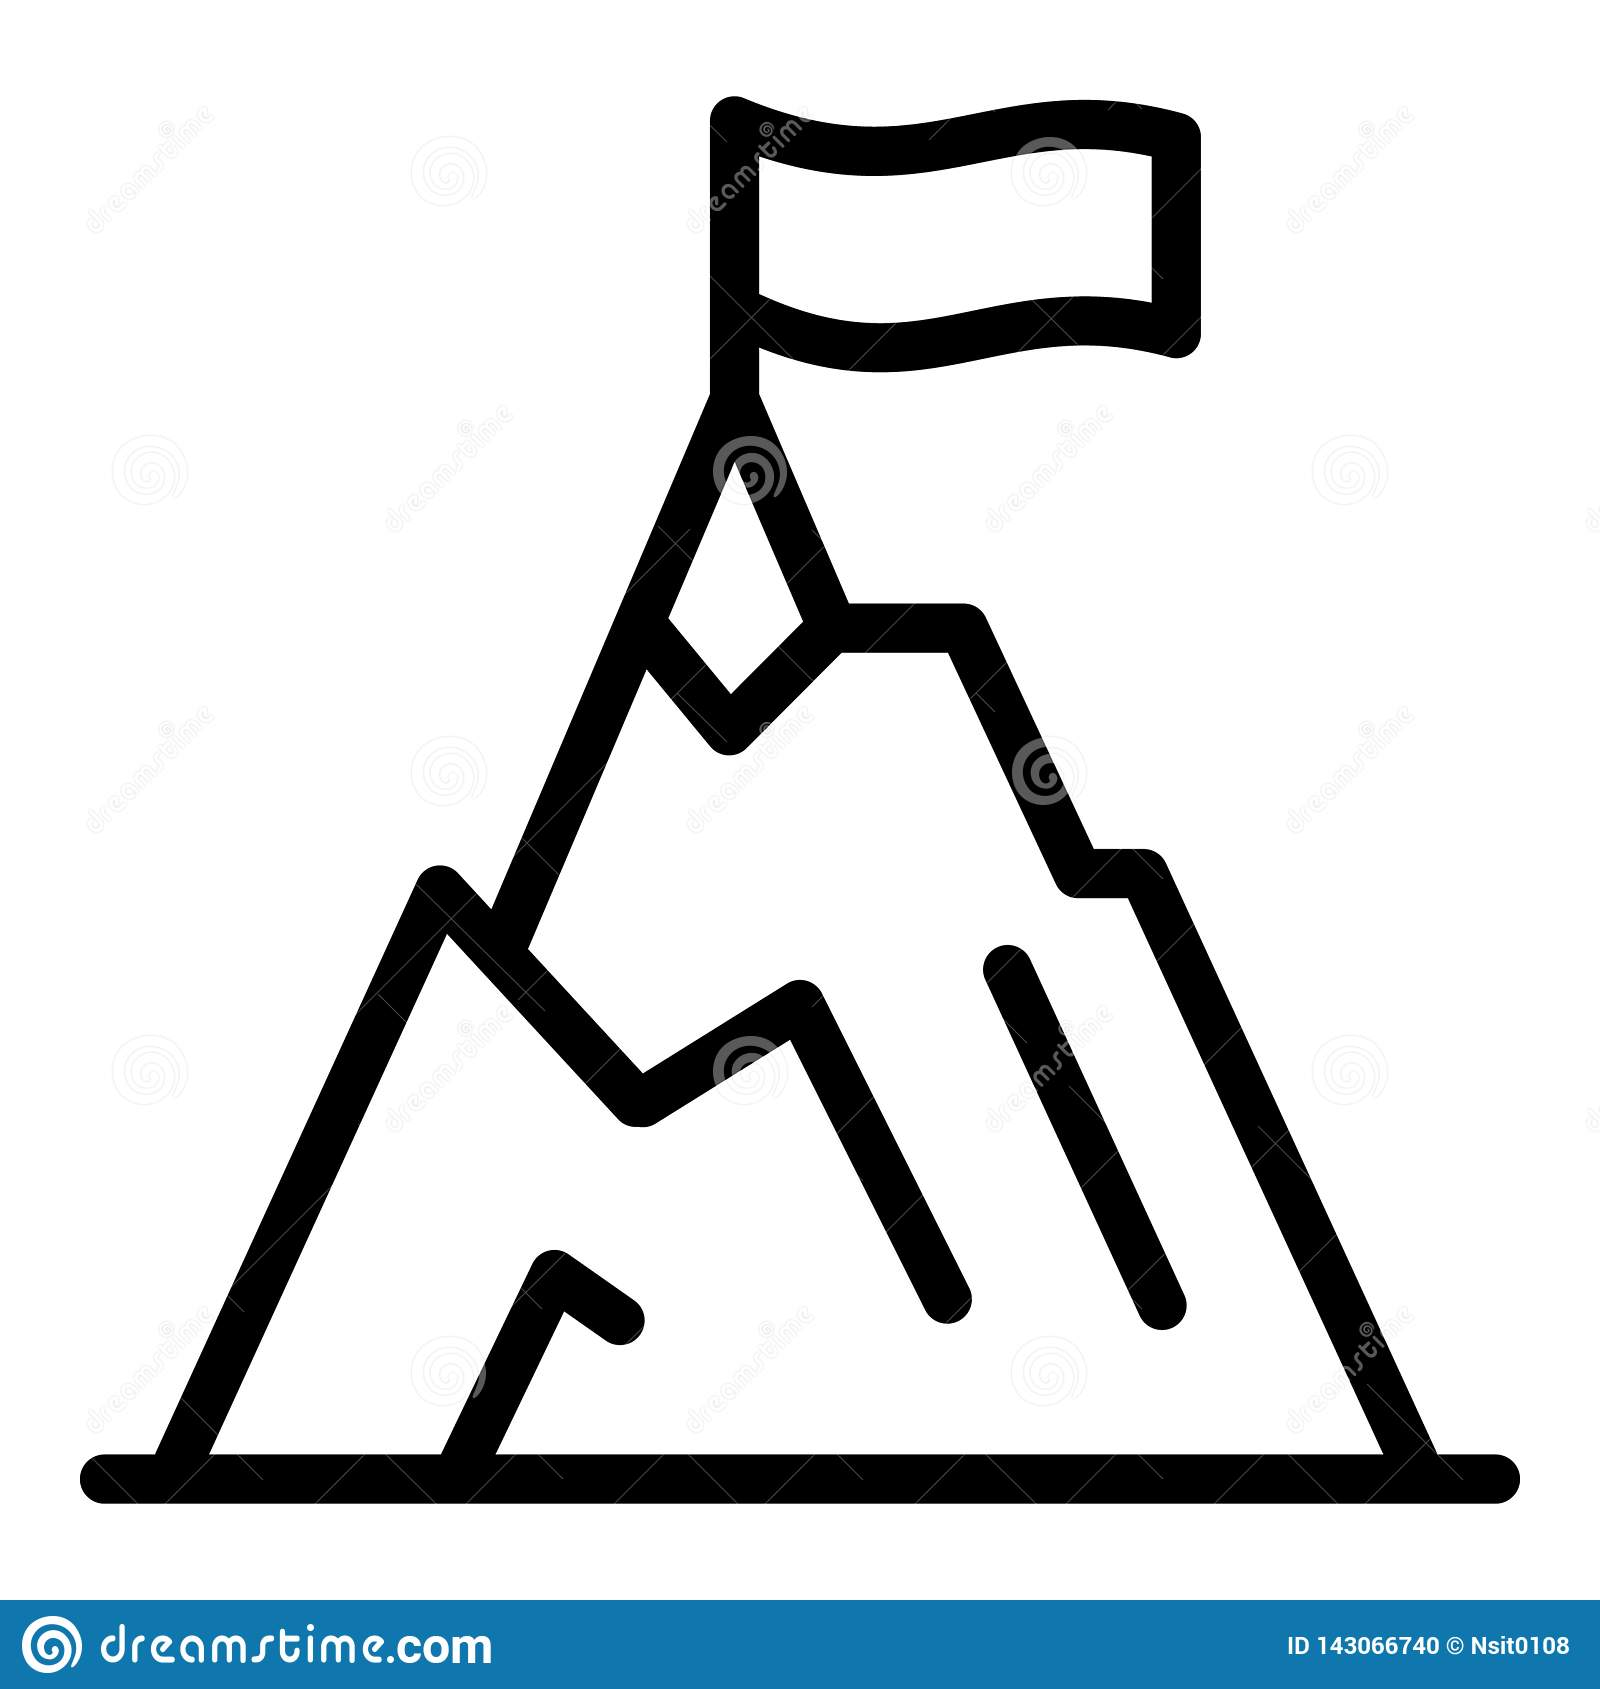 Climbing mountain icon, outline style